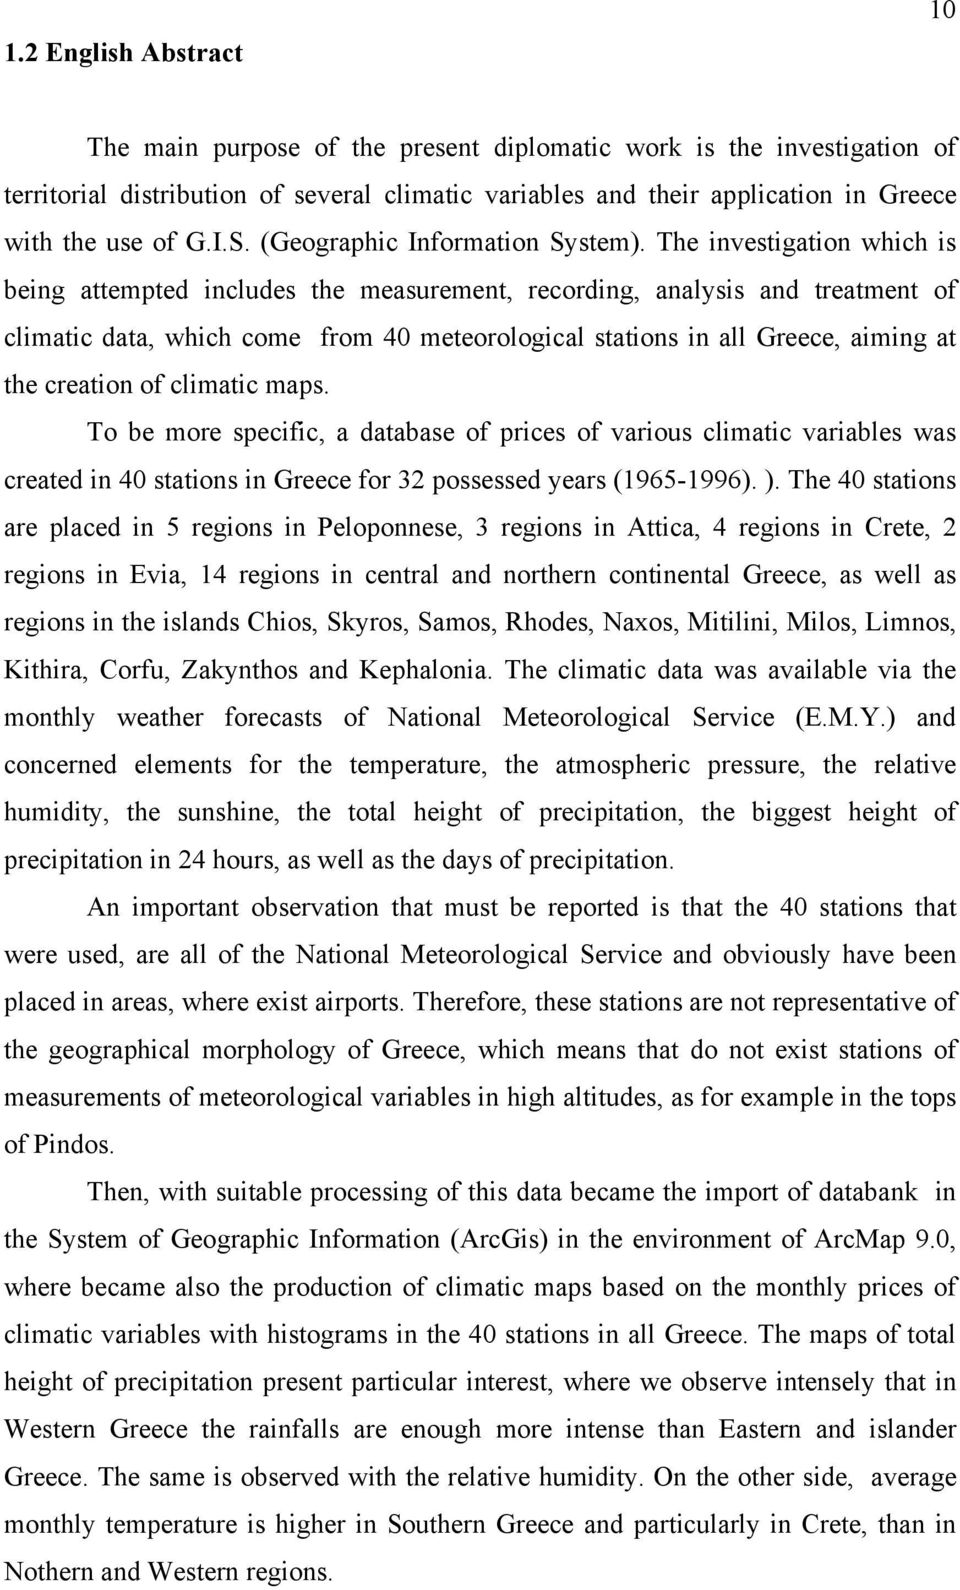 The investigation which is being attempted includes the measurement, recording, analysis and treatment of climatic data, which come from 40 meteorological stations in all Greece, aiming at the